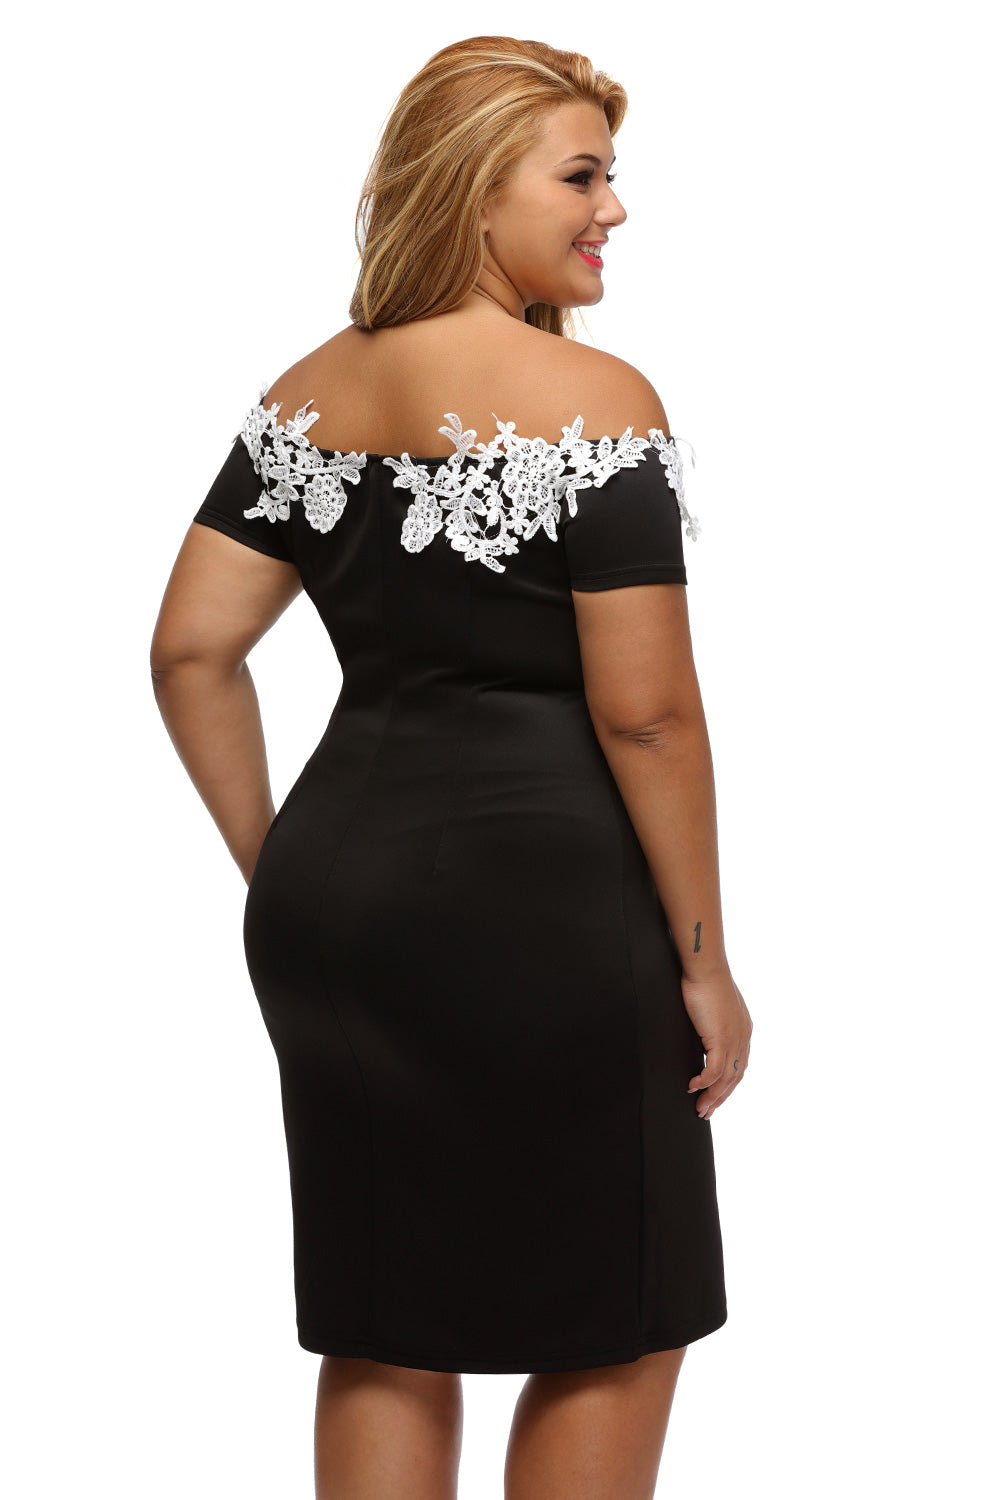 Lace Crochet Off Shoulder Black Plus Size Pencil Dress